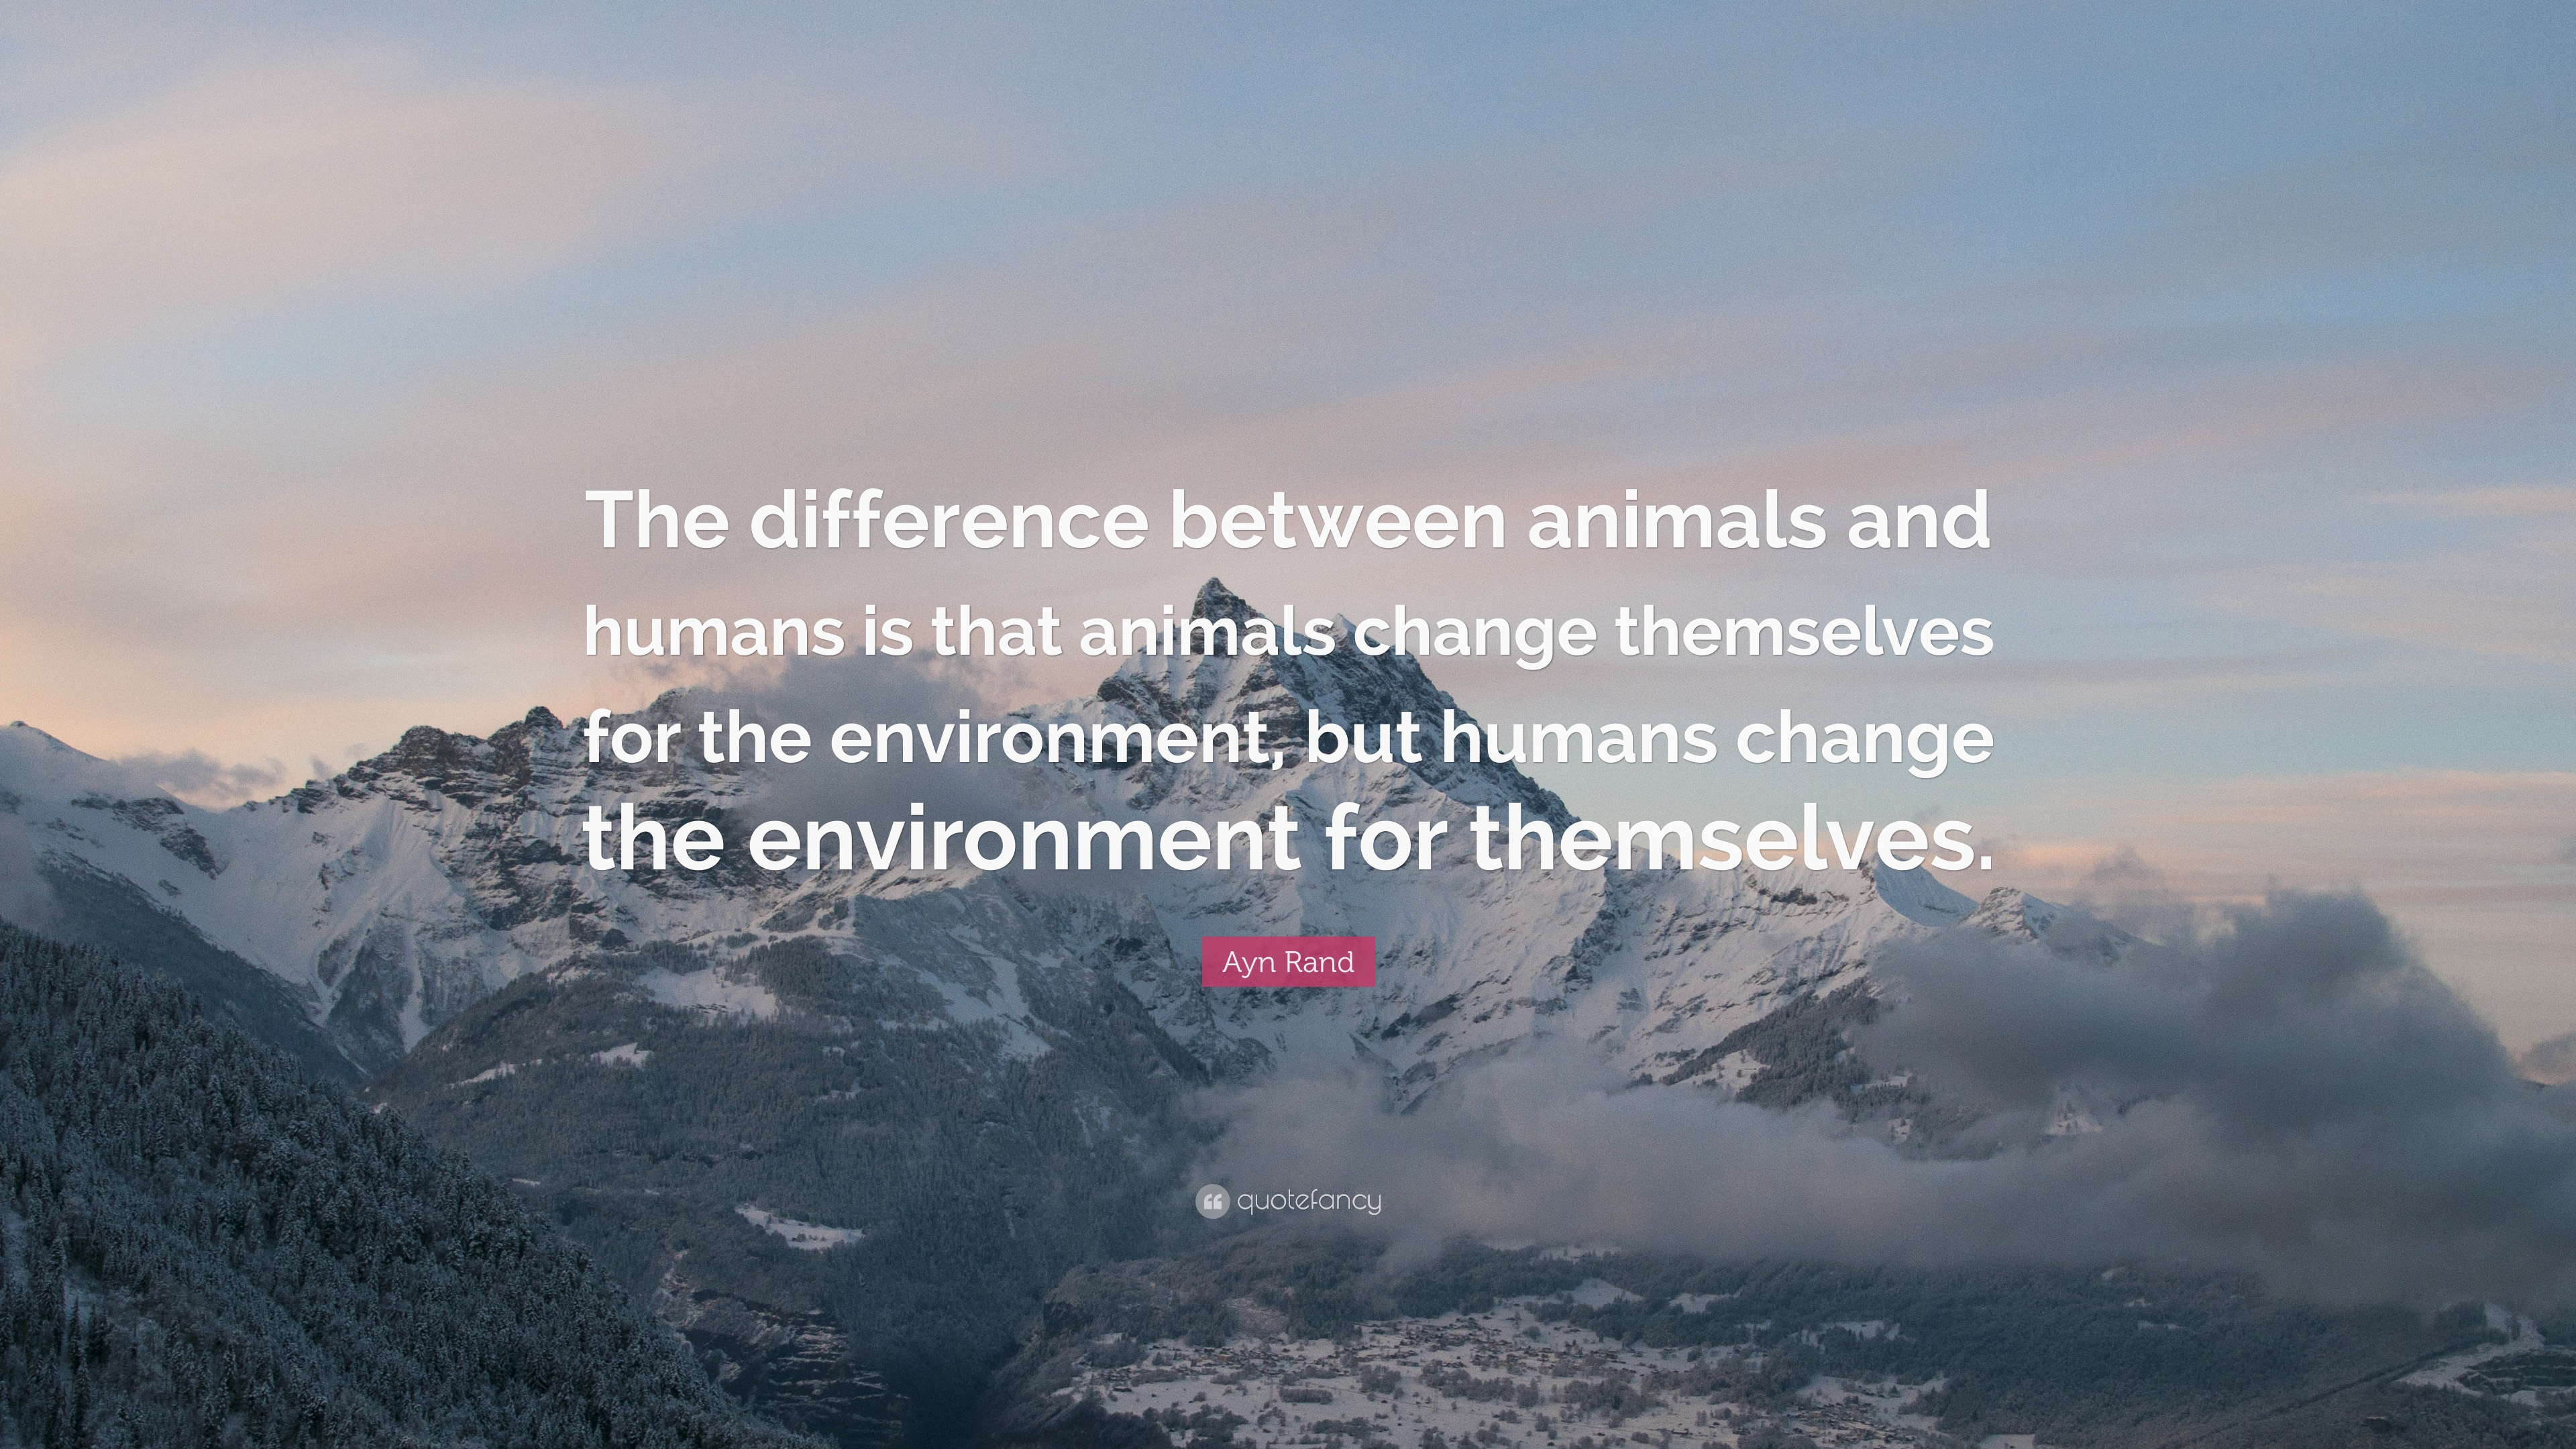 ayn rand quote the difference between animals and humans is that